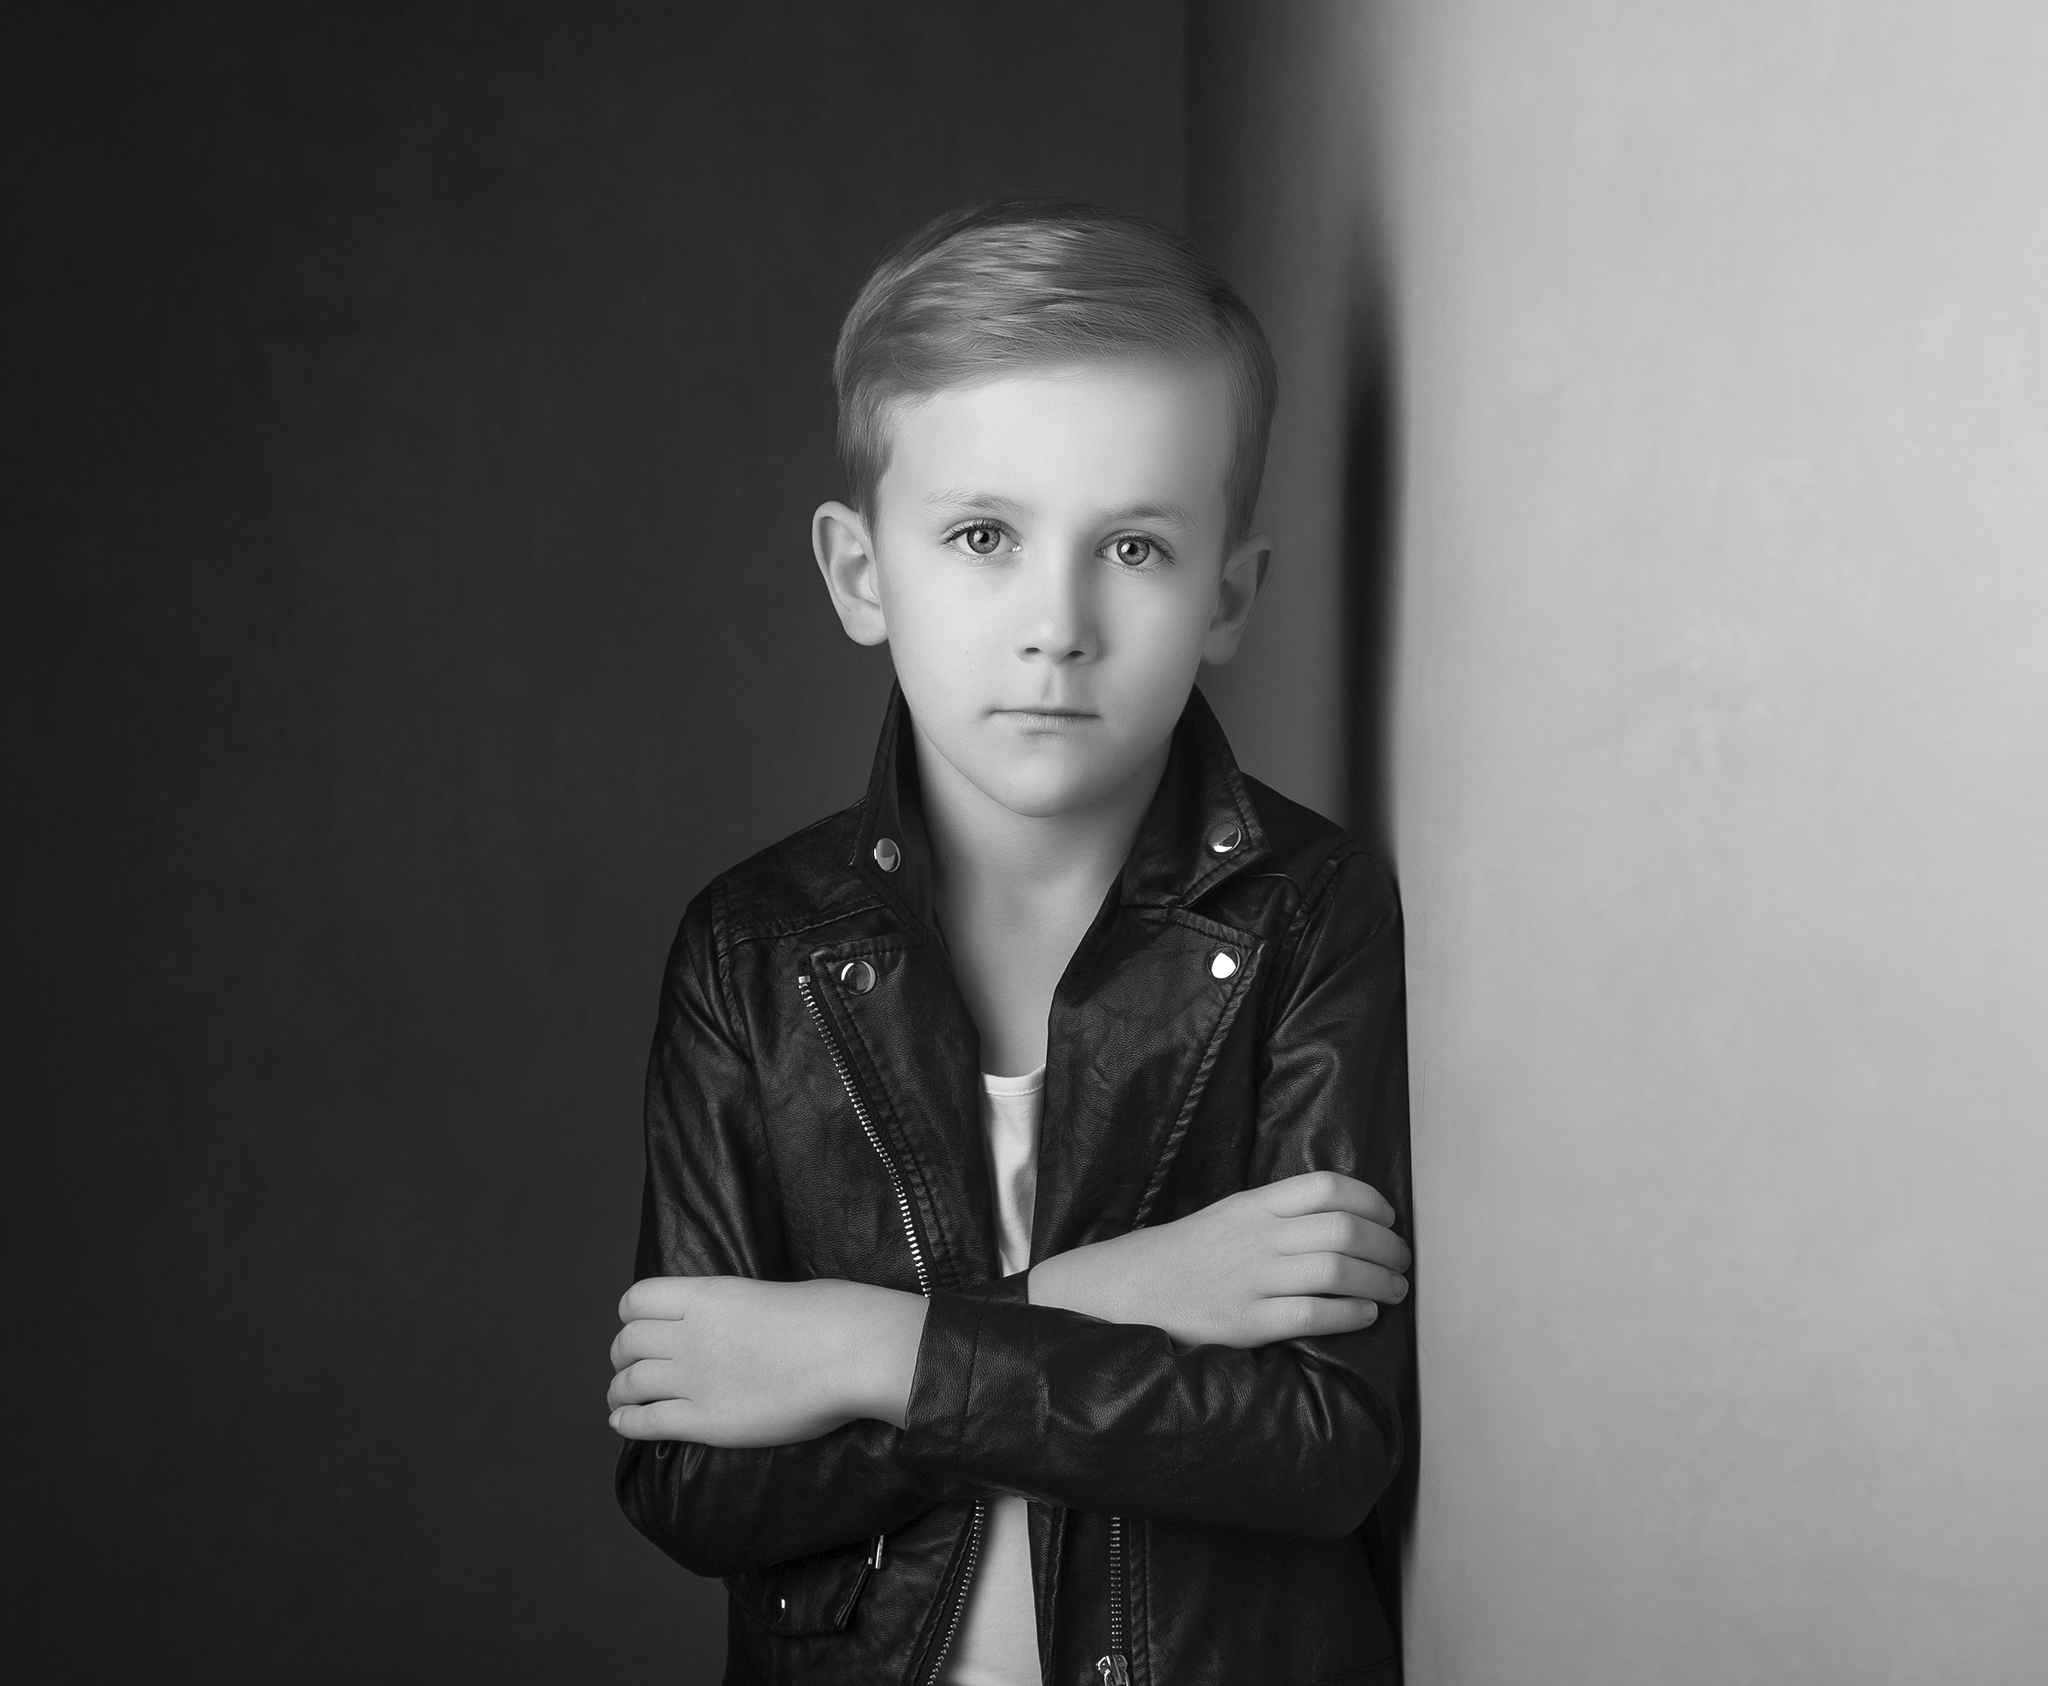 elizabethgphotography_childrens_fineart_kingslangley_hertfordshire_model_actor_updates_teddy_hawkins.jpg